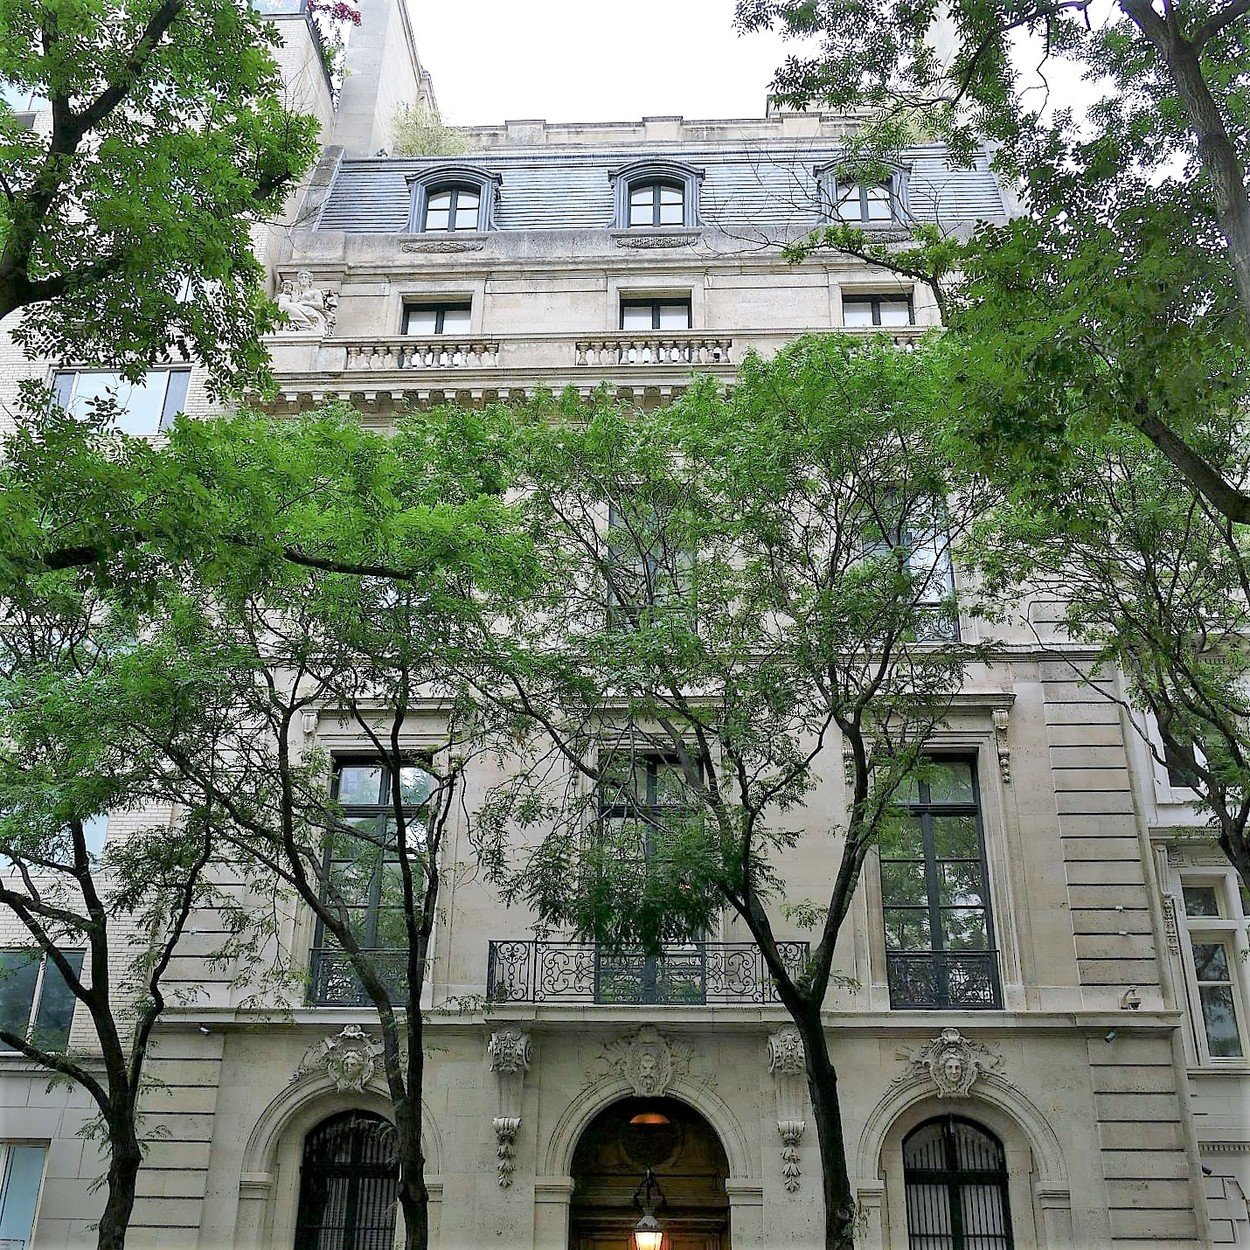 Pictures of Jeffrey Epstein's Manhattan residence that still shows signs of the raid by investigators as well as unusual naked statues overseeing the fortress. 08 Jul 2019, Image: 455569781, License: Rights-managed, Restrictions: World Rights, Model Release: no, Credit line: Profimedia, Mega Agency